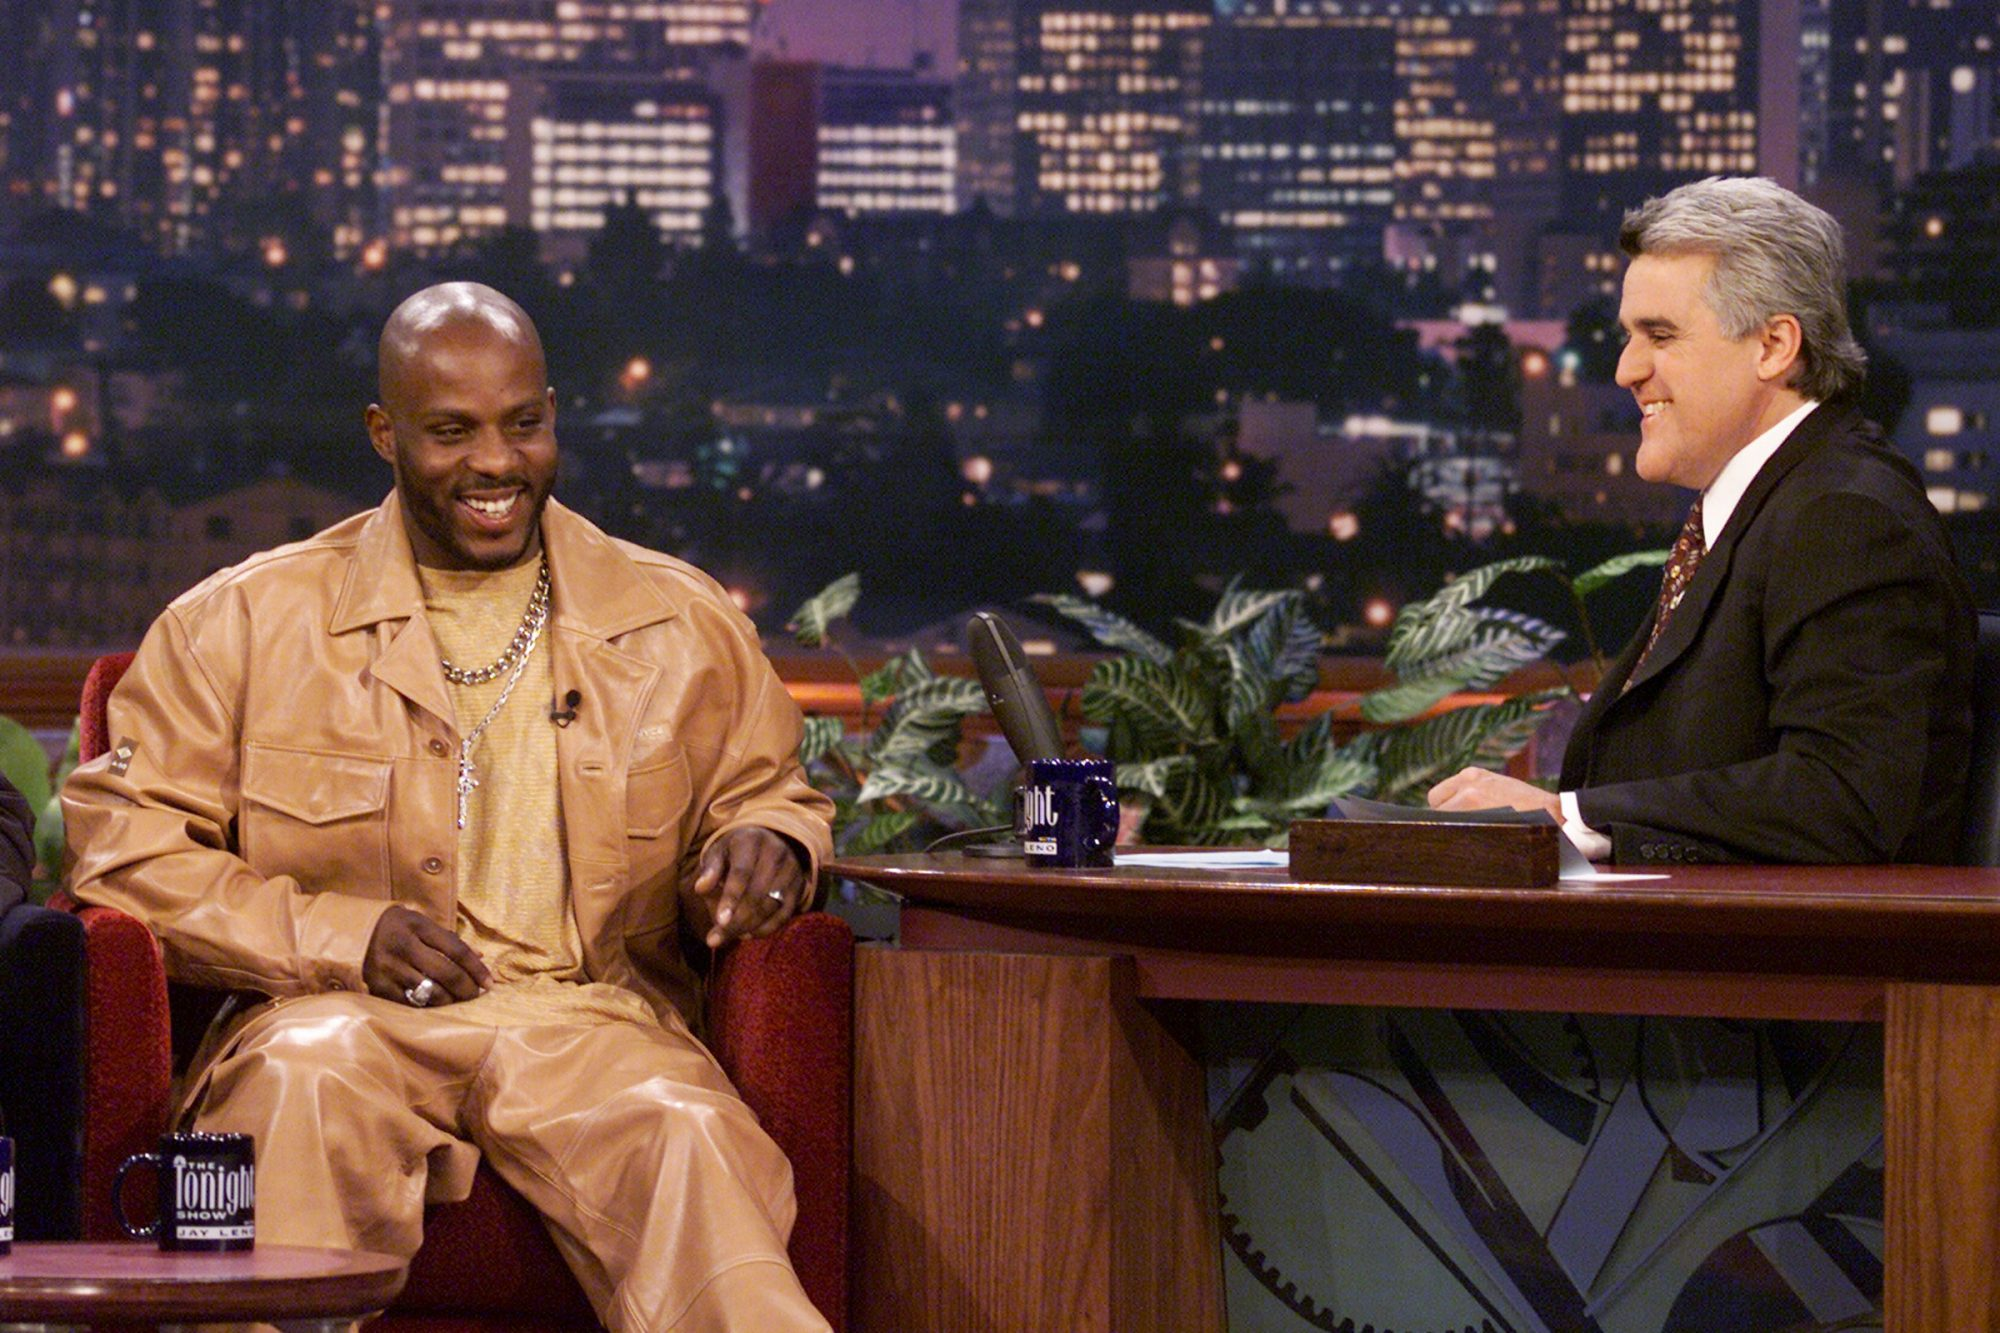 DMX during an interview with host Jay Leno on March 13, 2001